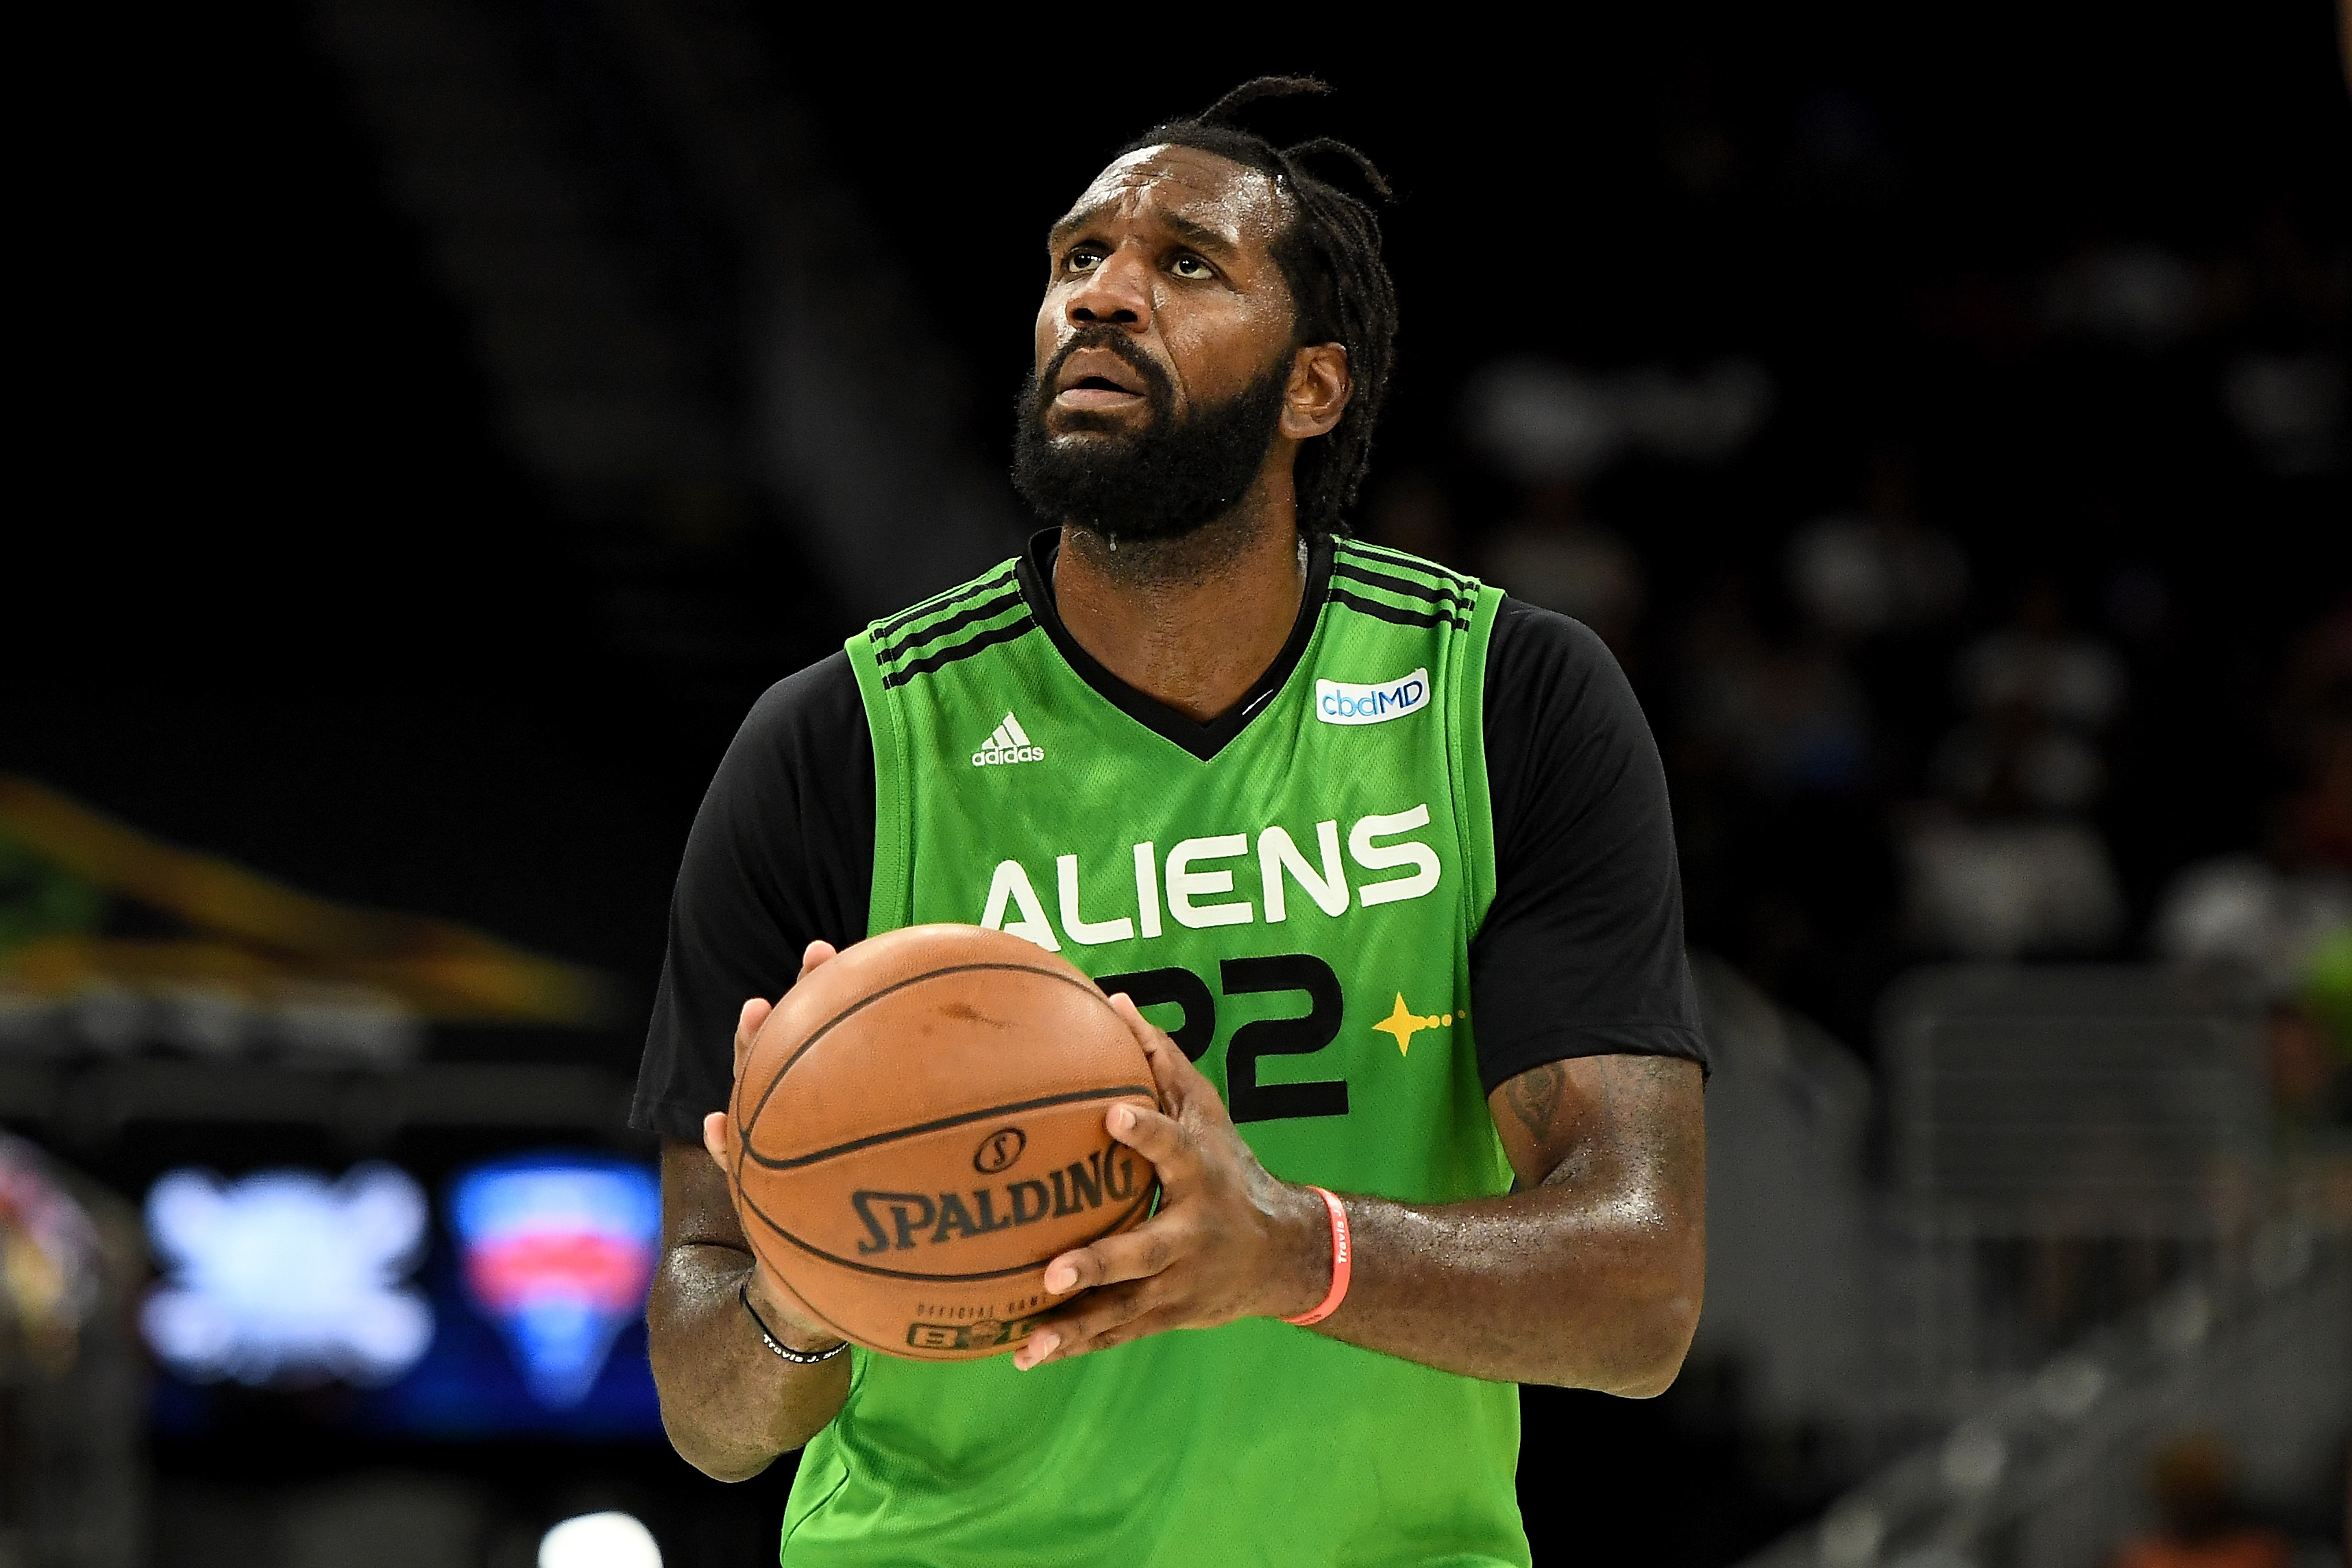 Greg Oden could've been an NBA great, but he flamed out of the league and became a mediocre player in the Chinese Basketball Association.